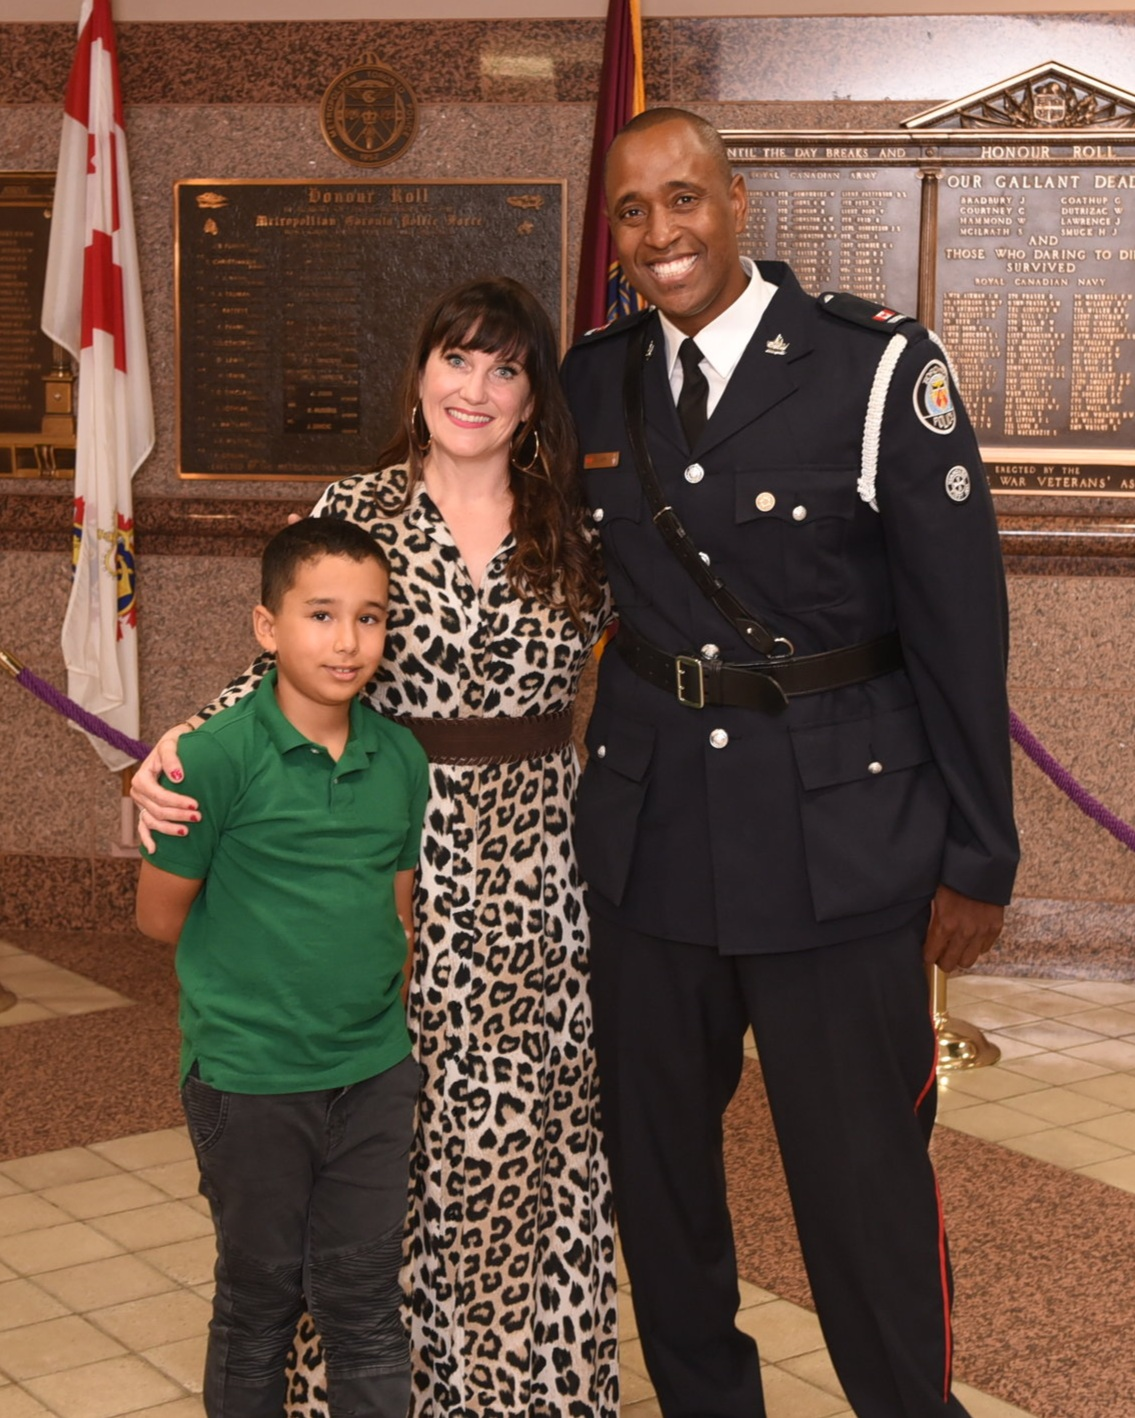 Const. Dale Swift with his wife Beth & their son Tristen